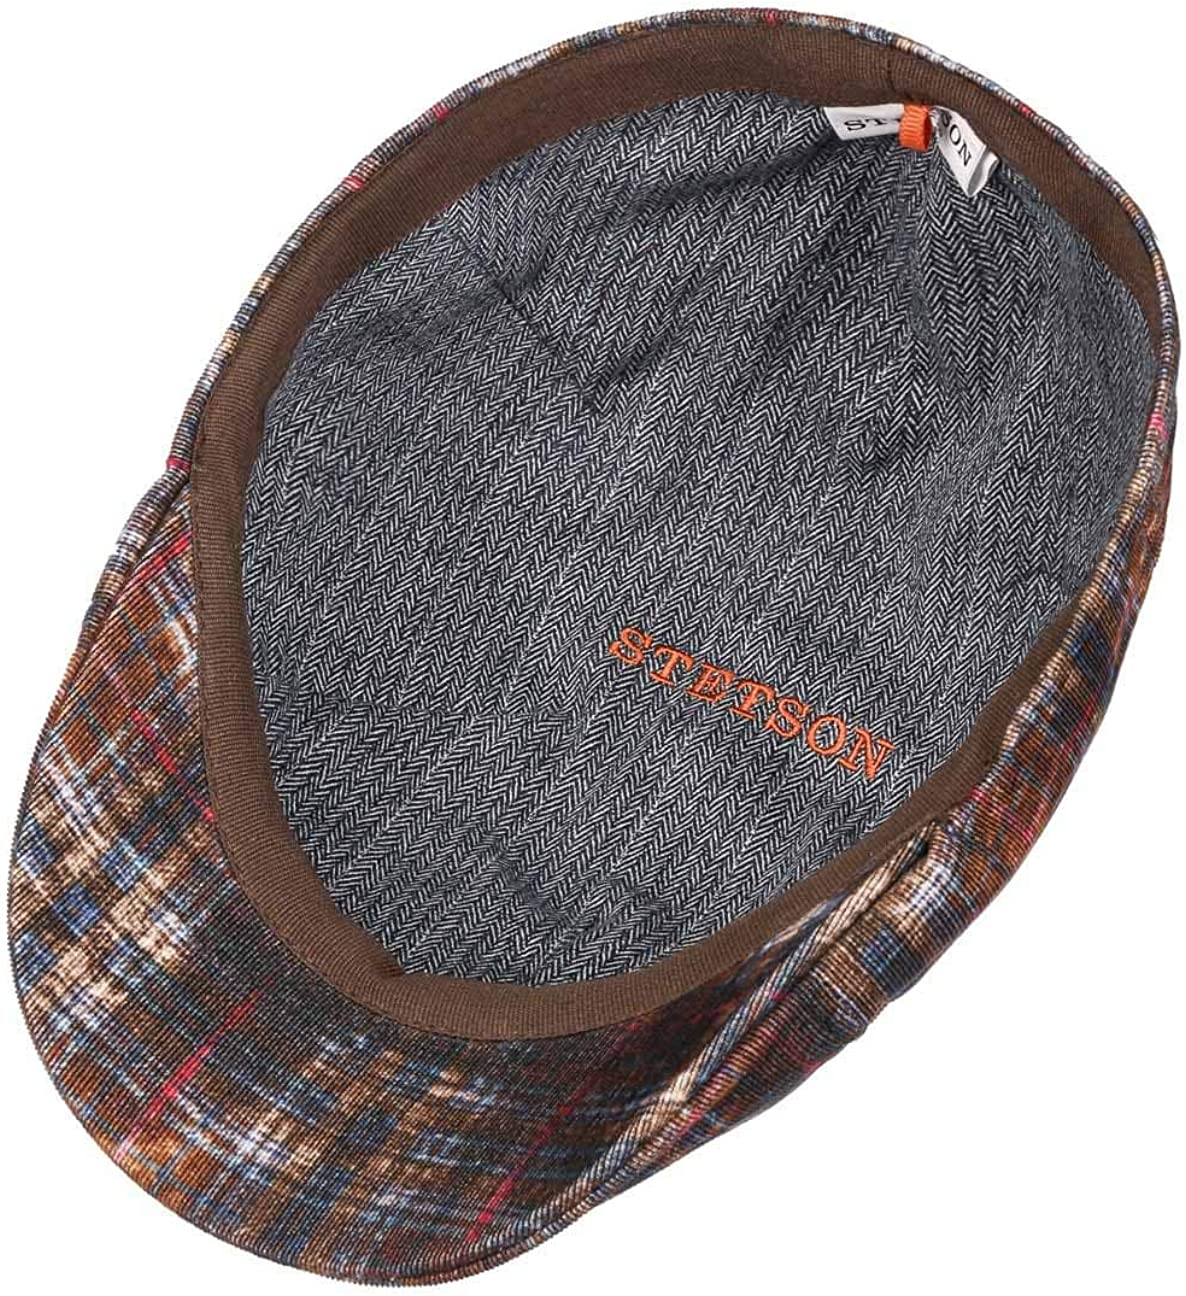 Fodera Estate//Inverno Made in The EU Cotton cap Cappello Piatto con Visiera Stetson Coppola Texas a Coste Fine Uomo